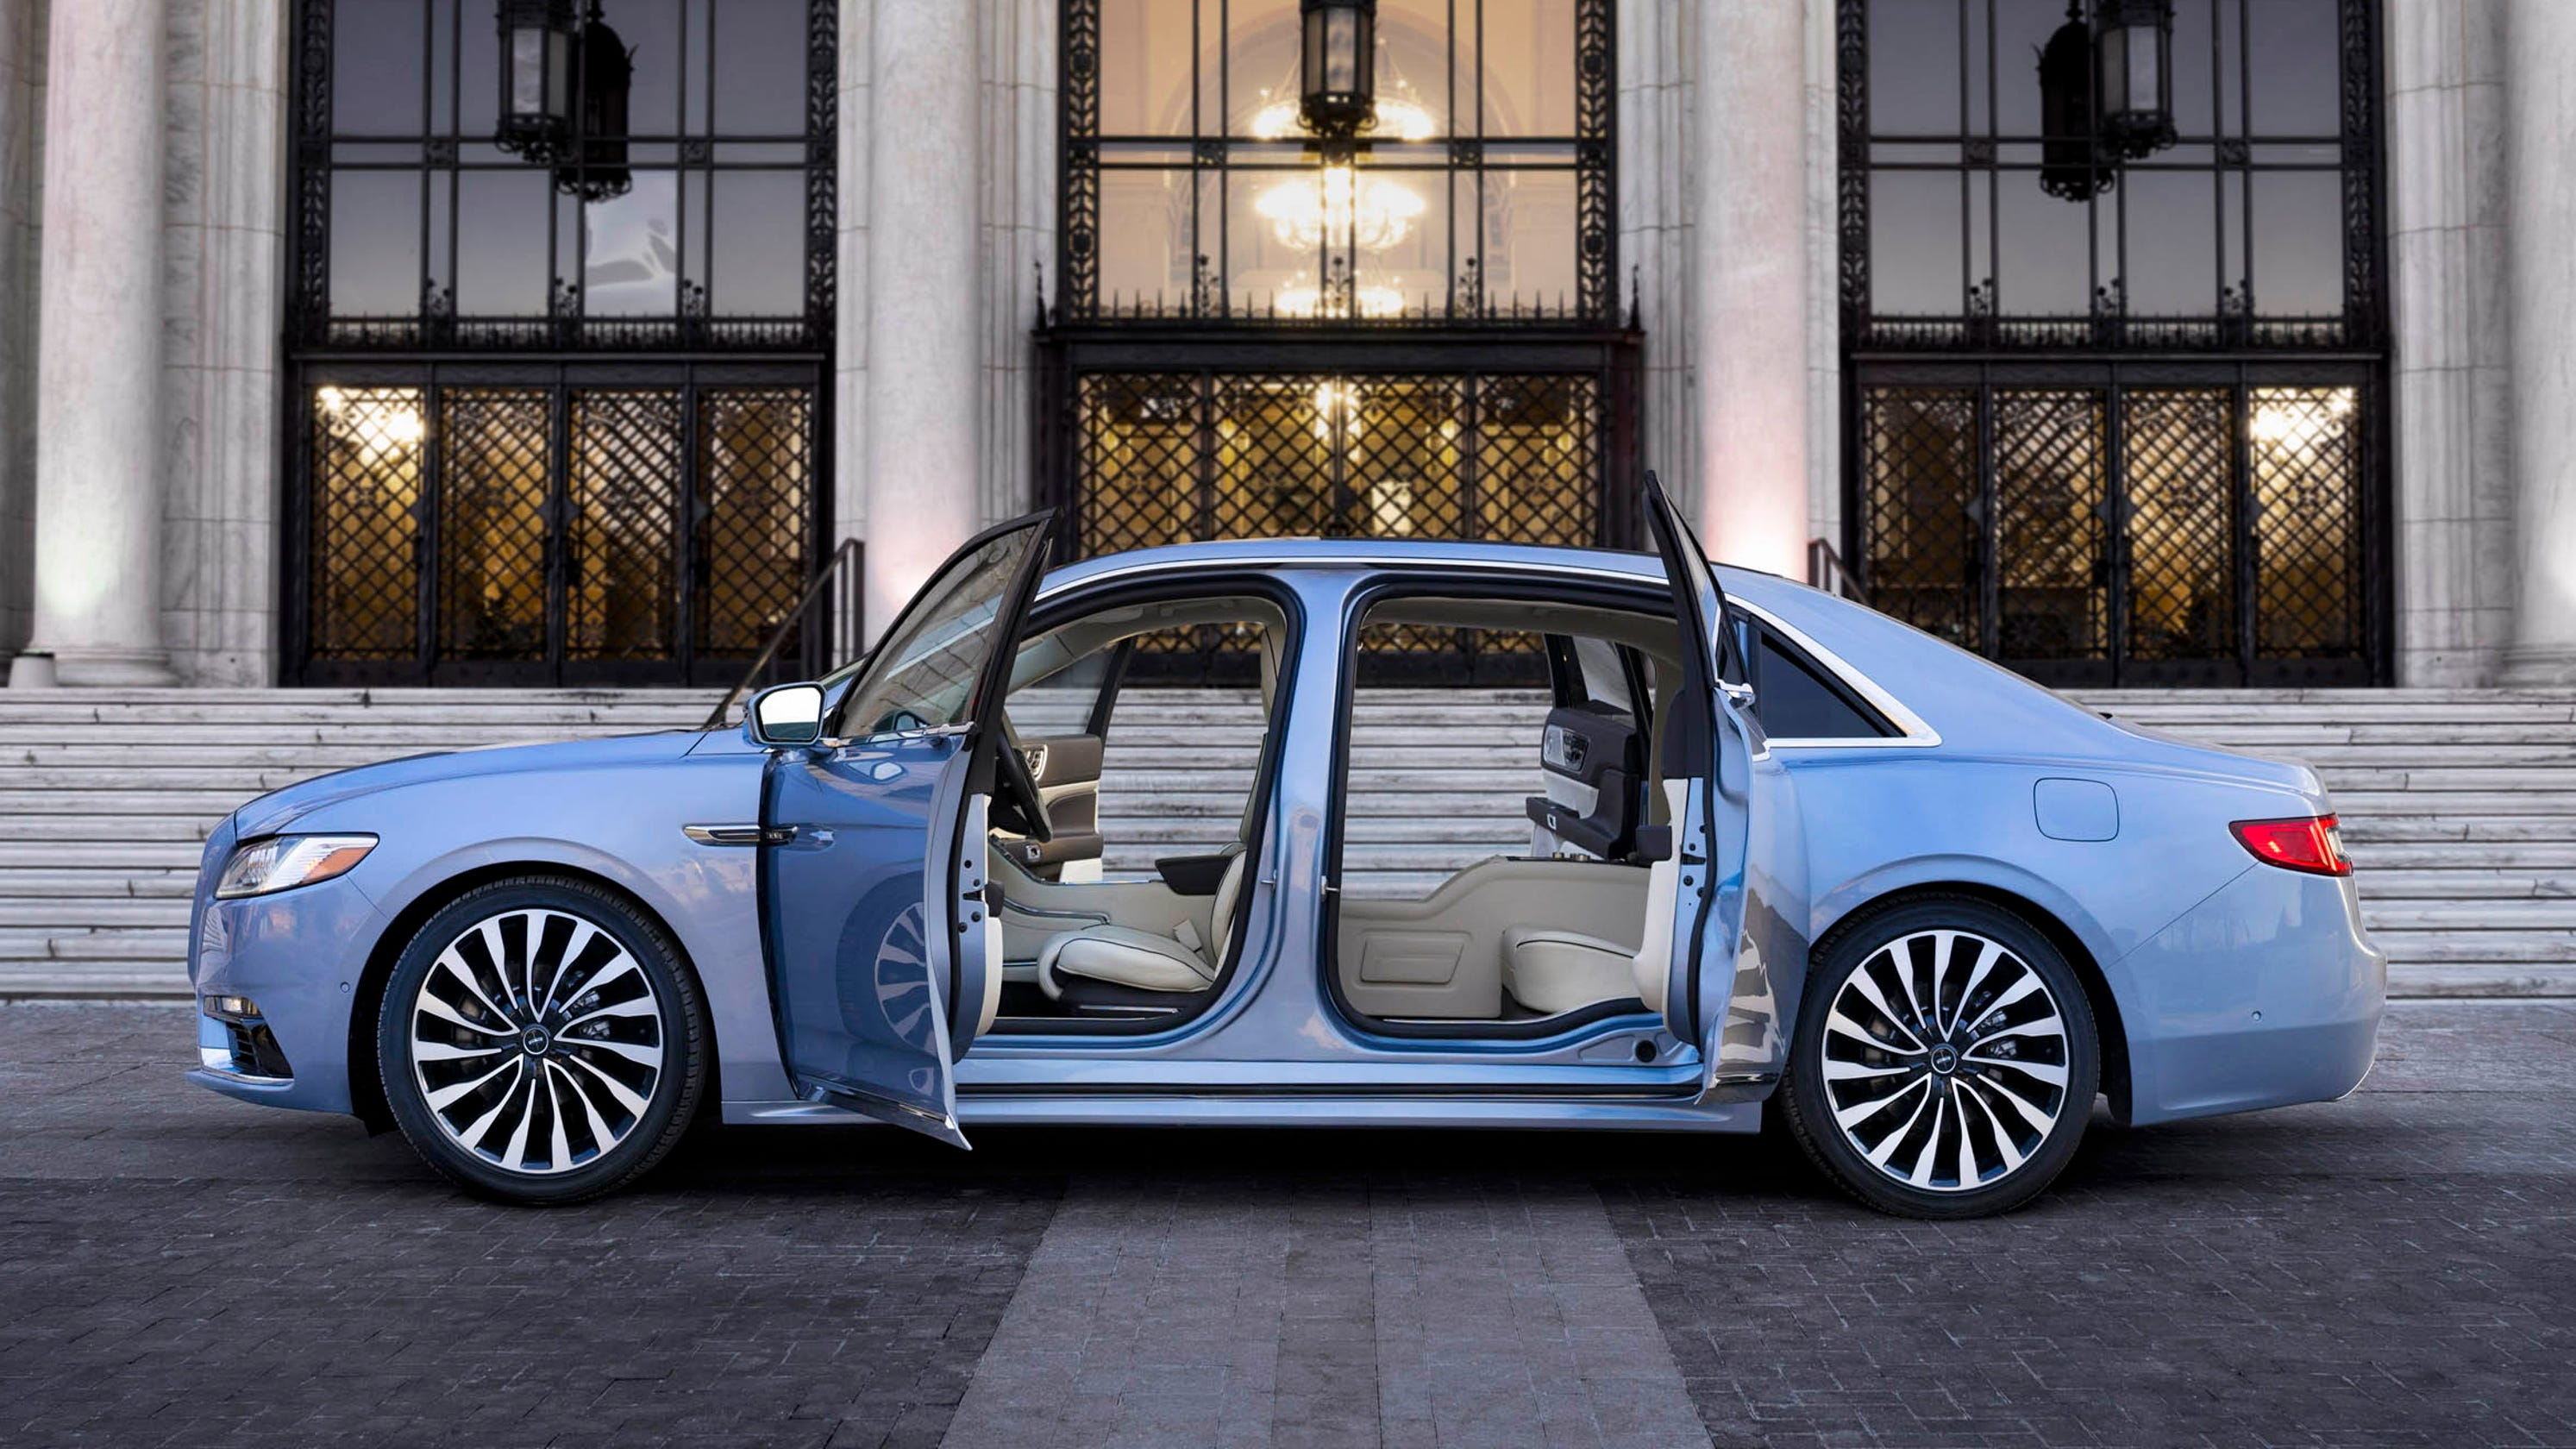 lincoln continental makes vintage limited edition with 39 suicide doors 39. Black Bedroom Furniture Sets. Home Design Ideas